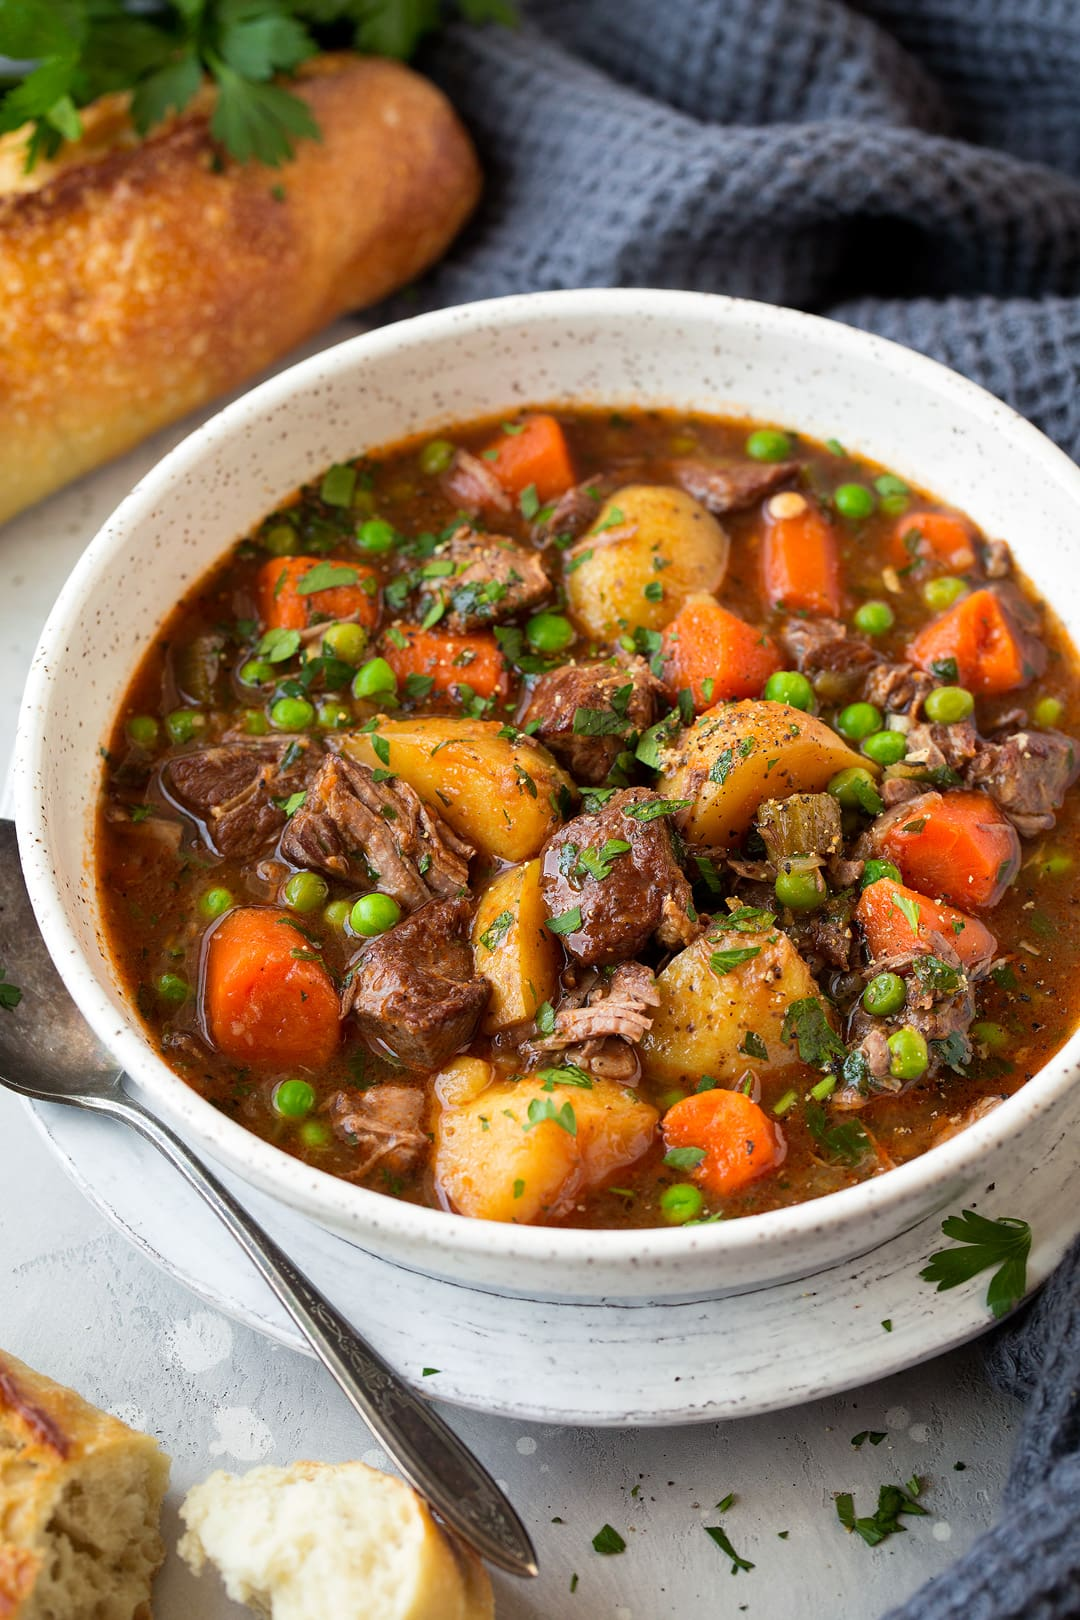 Slow Cooker Beef Stew in a white bowl with bread on the side